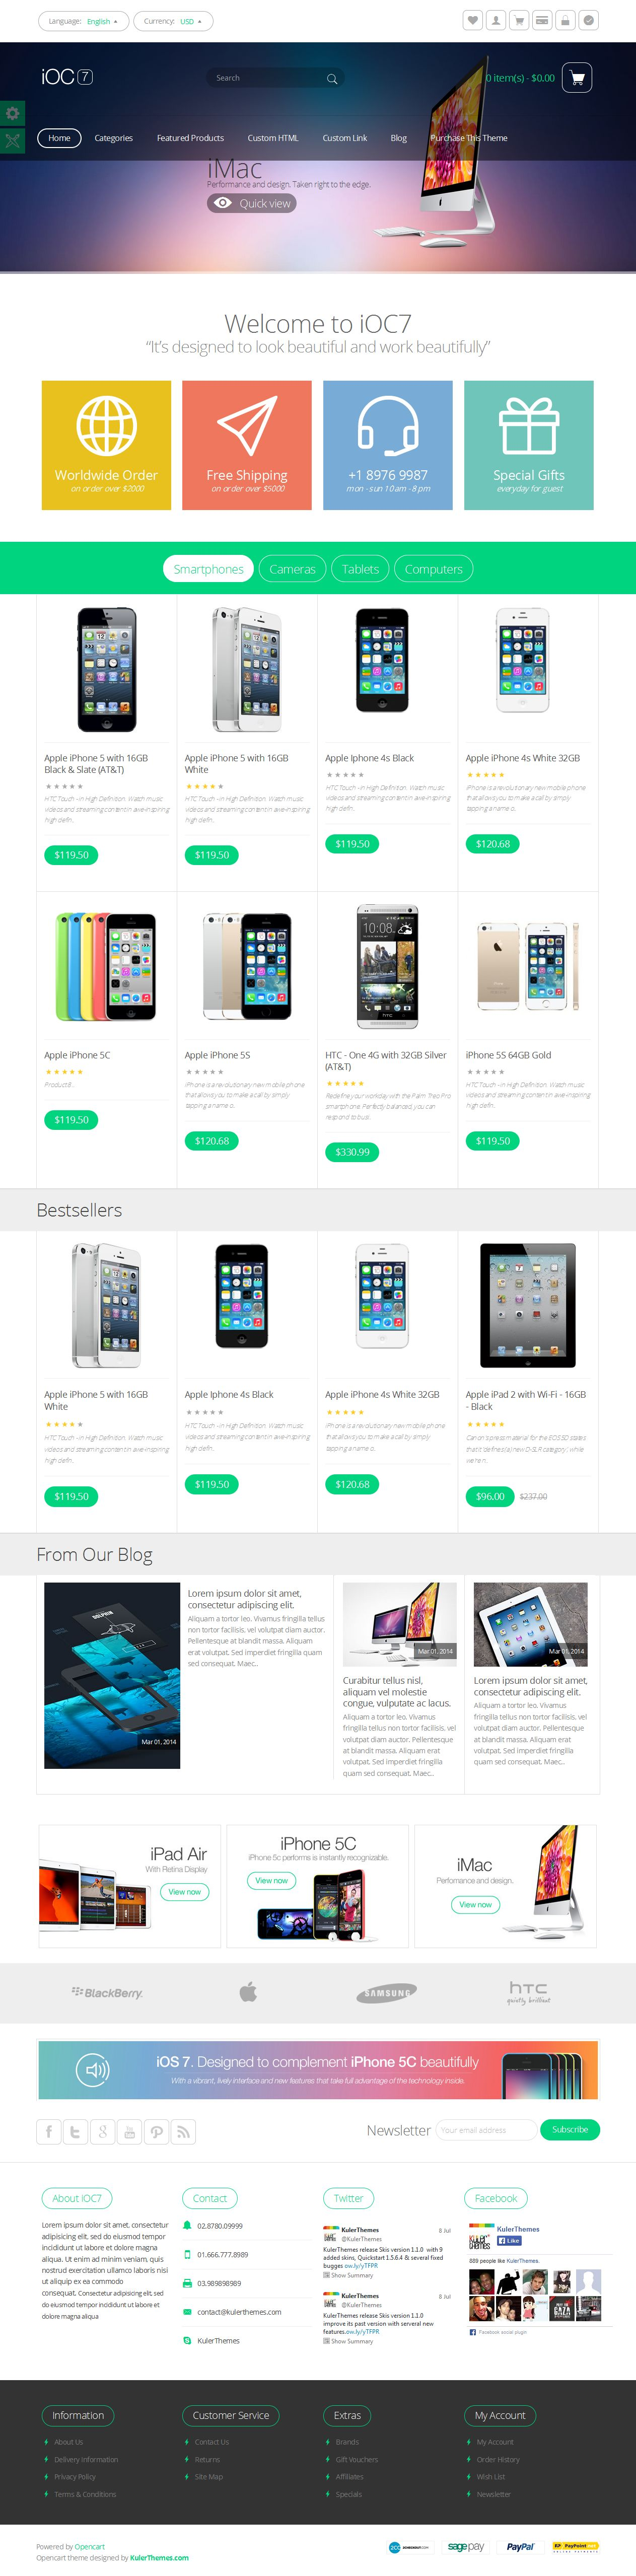 Pin von Awesome Graphic Design auf OpenCart Themes & Templates ...